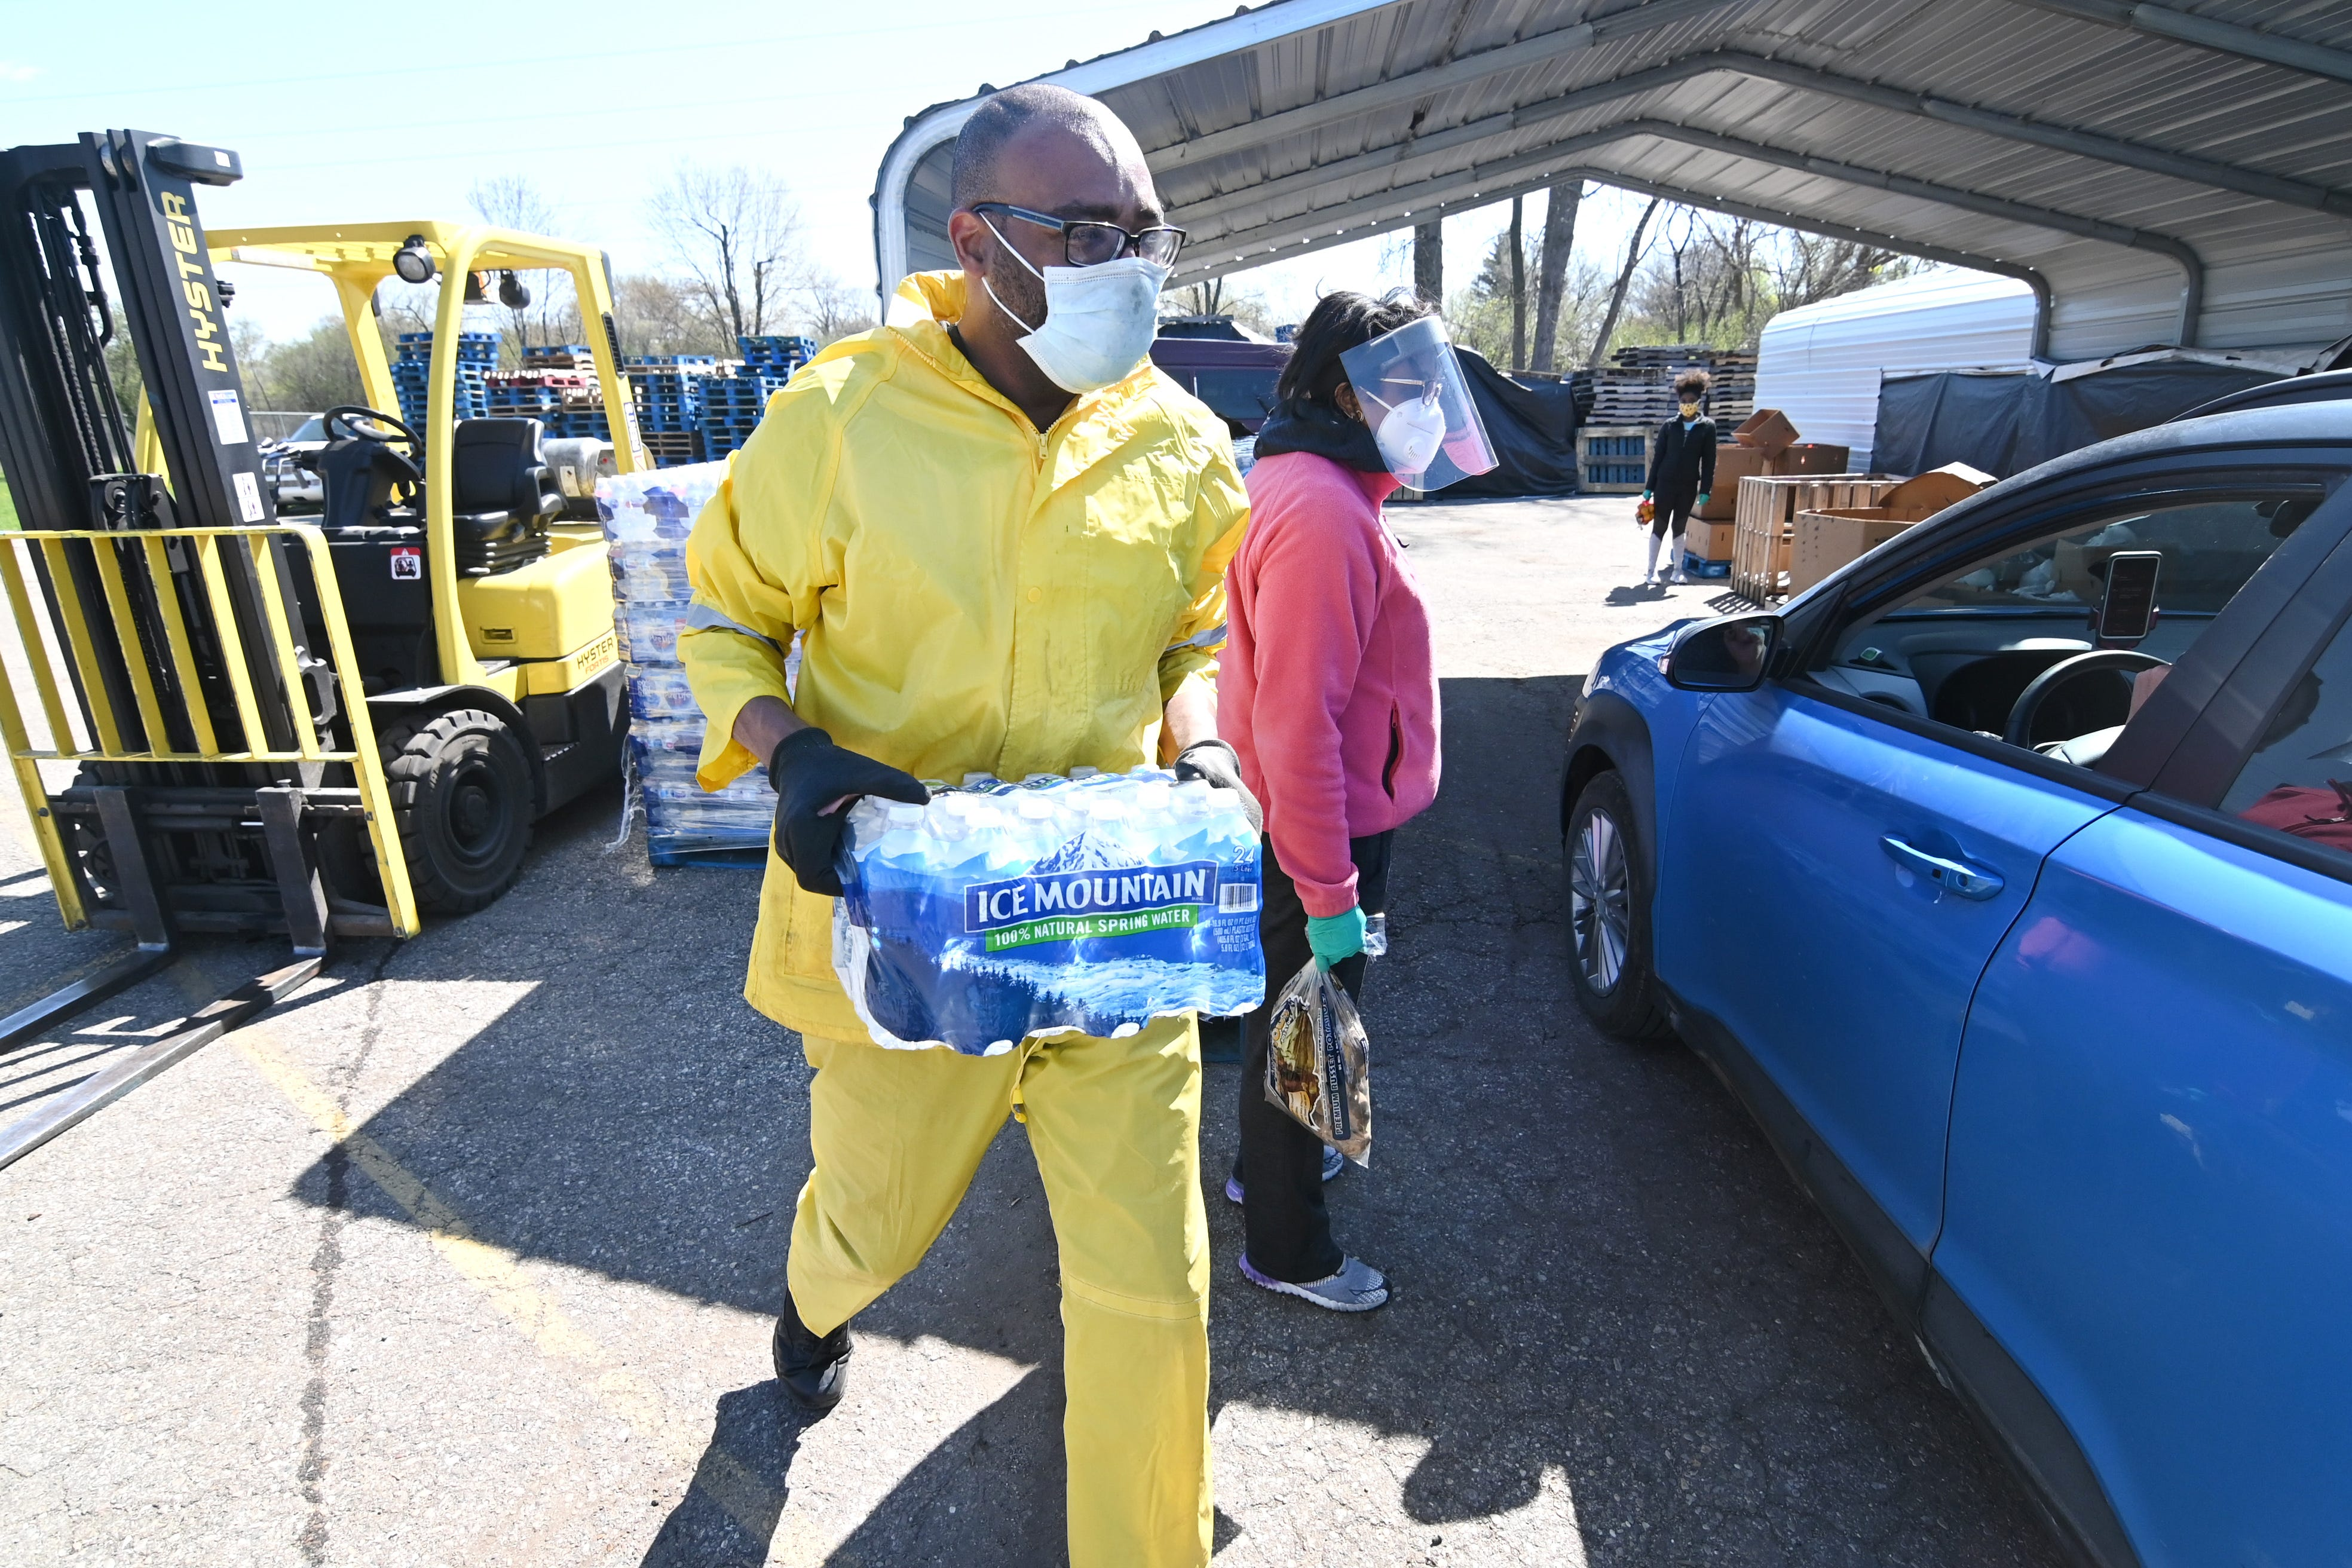 Medicaid coverage extended 5 years for Flint children, pregnant women